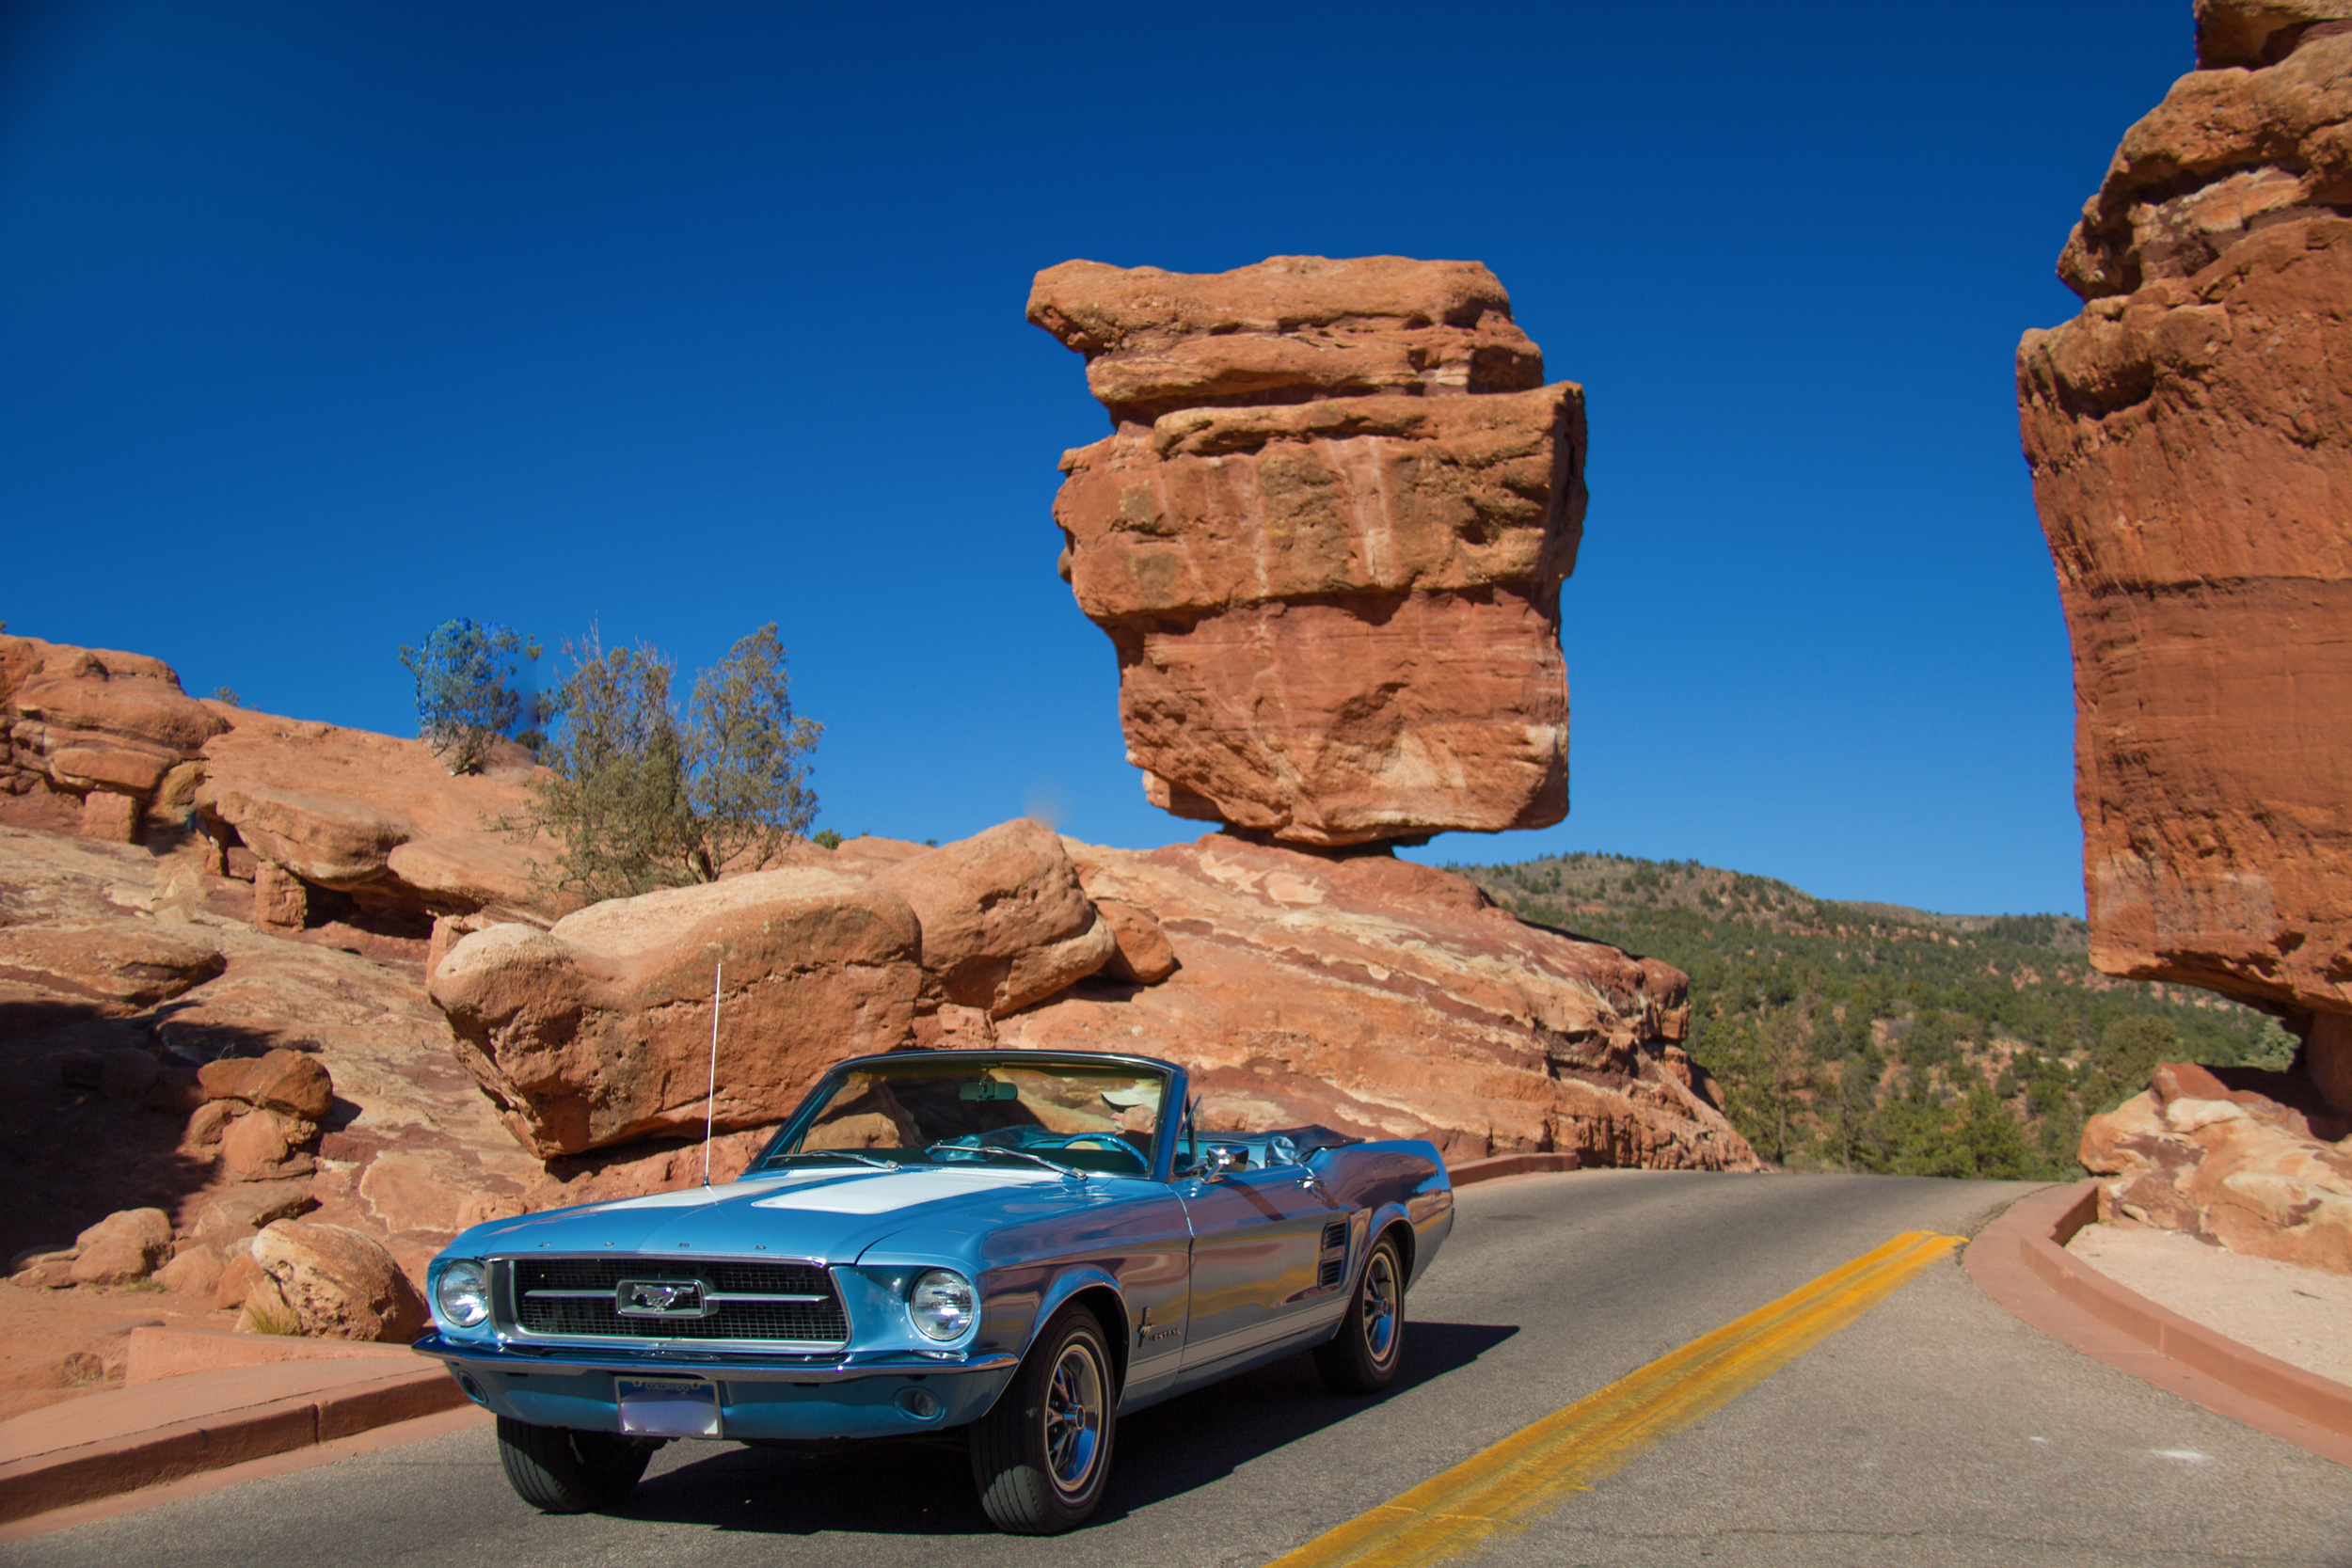 Darn that man and his Mustang... wait, they made the shot better!  At Balancing Rock in Garden of the Gods, Colorado Springs, Colorado.